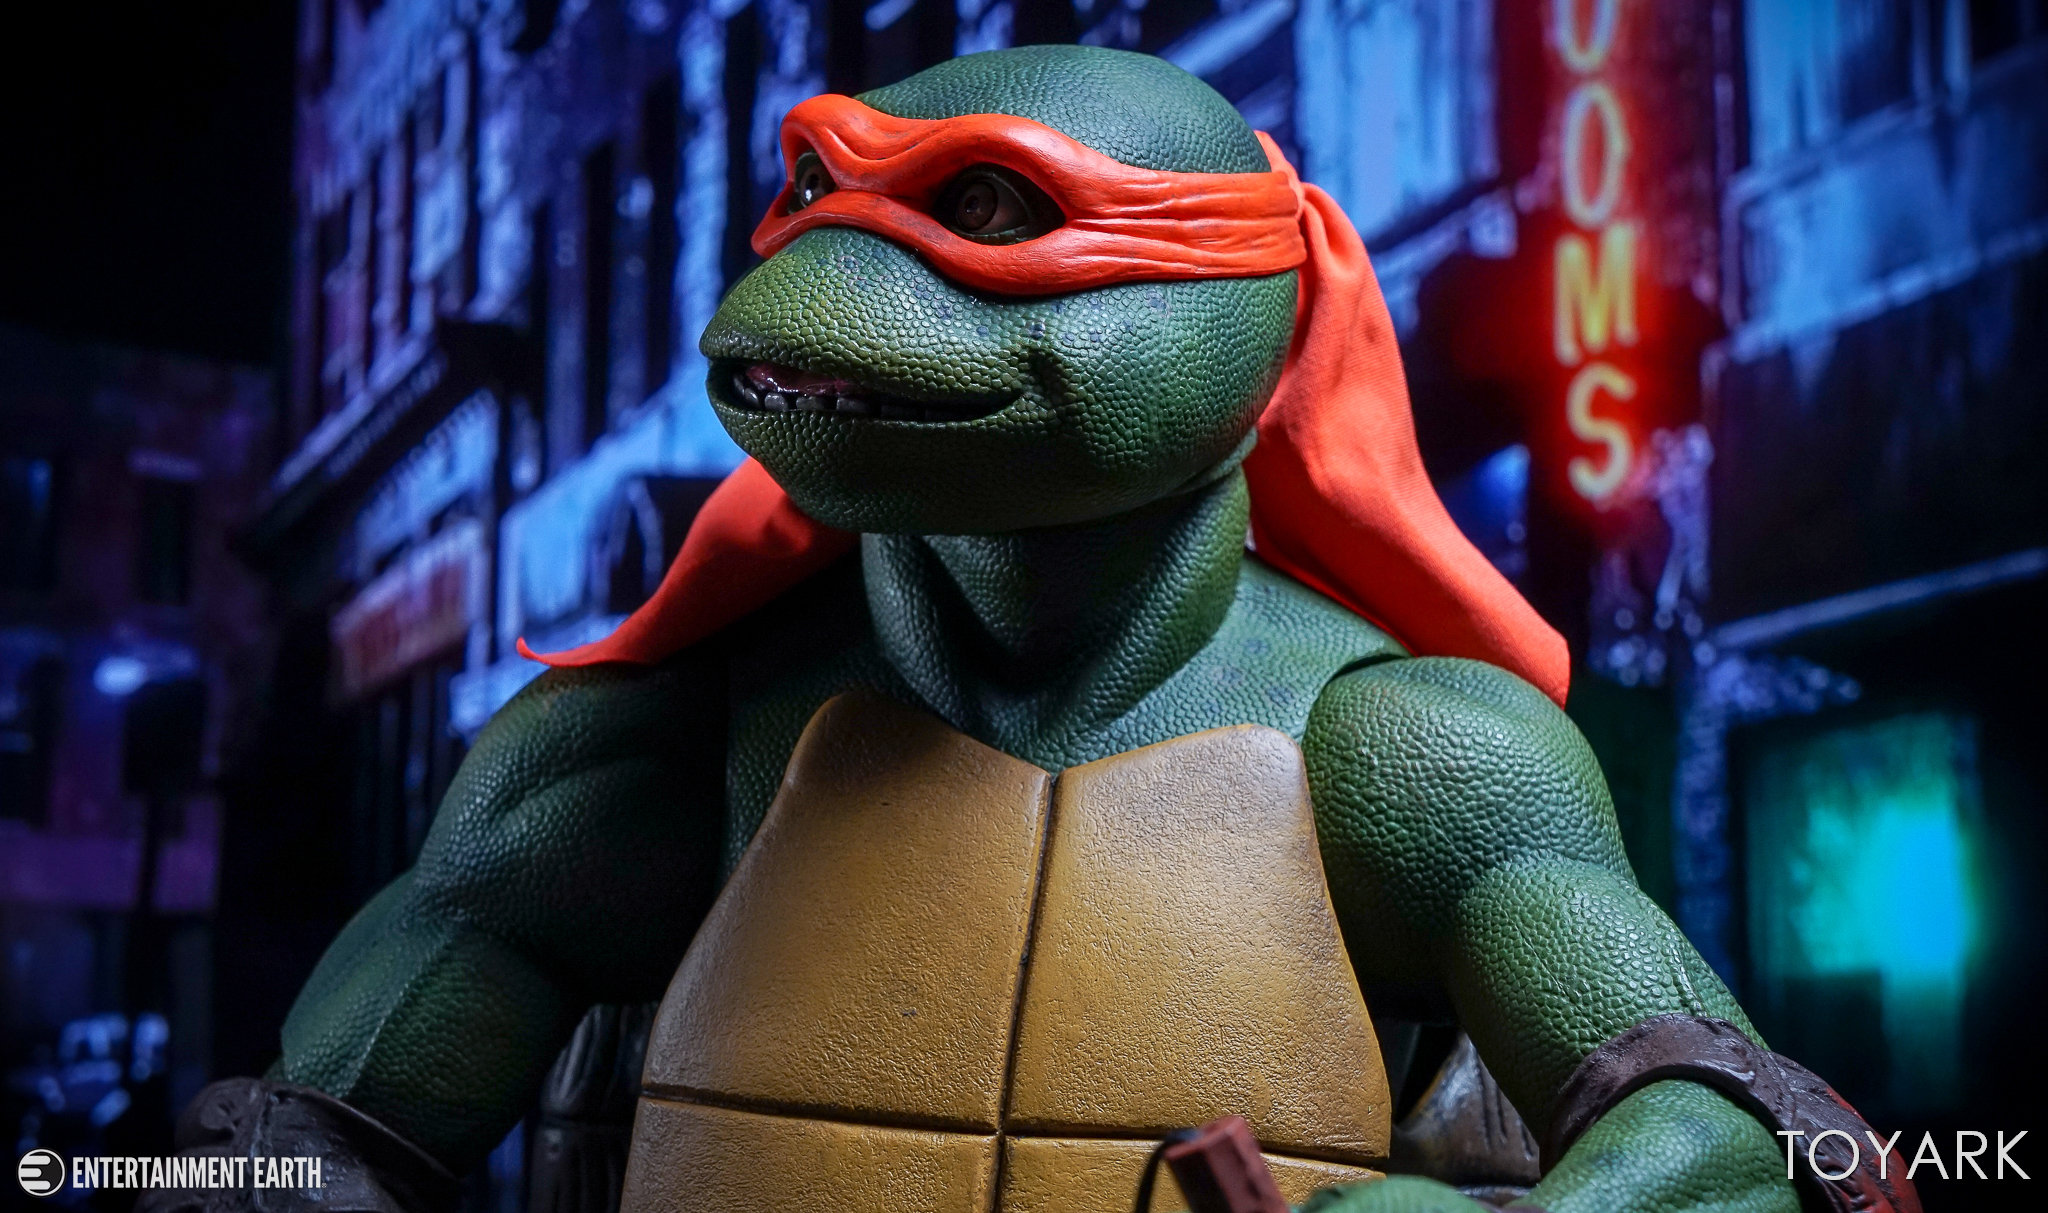 http://news.toyark.com/wp-content/uploads/sites/4/2017/10/NECA-Quarter-Scale-TMNT-Michelangelo-038.jpg